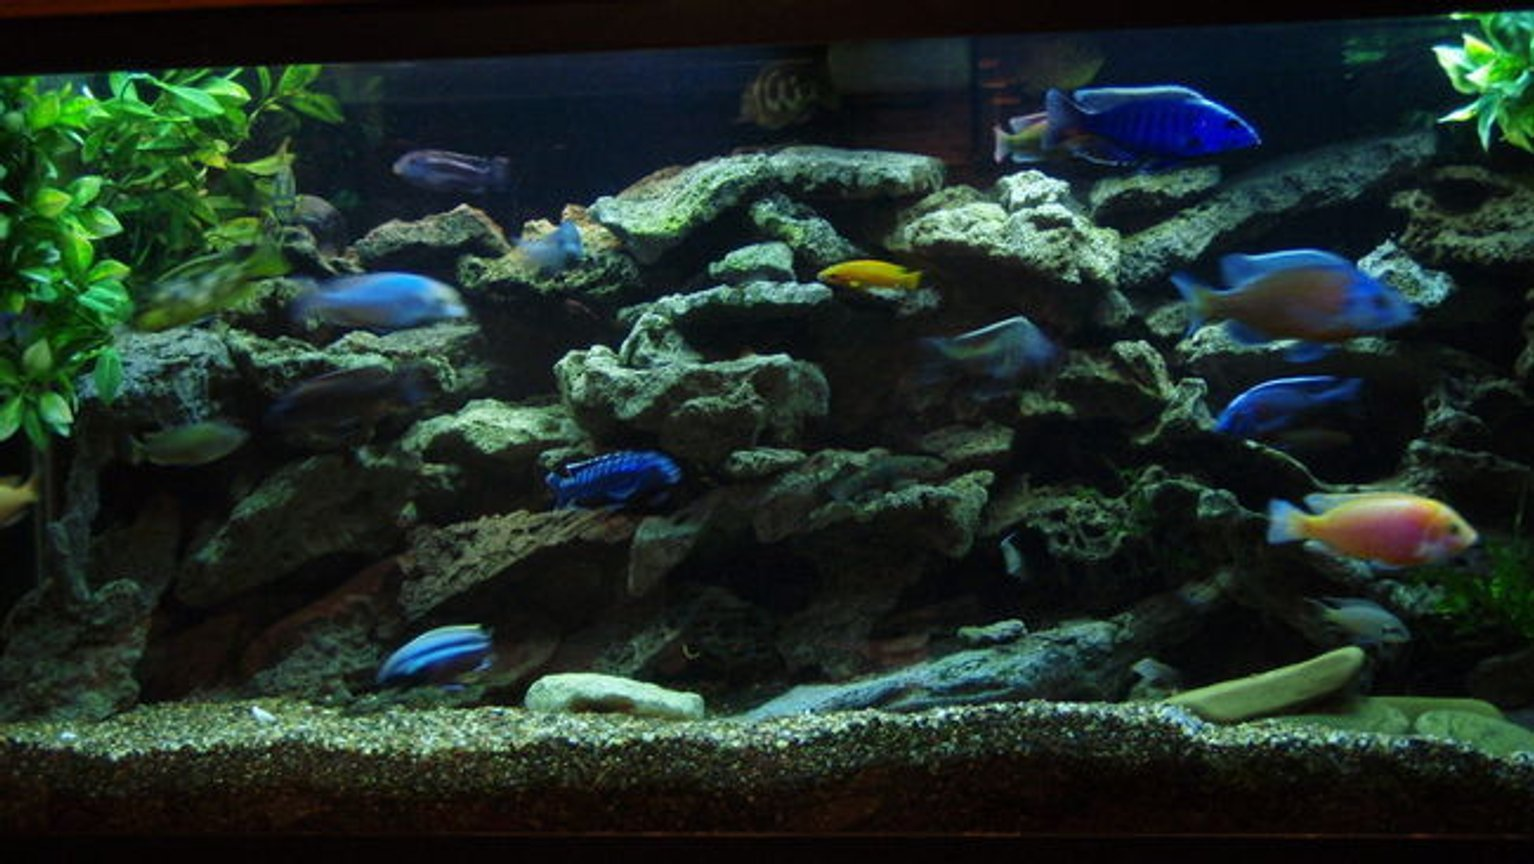 75 gallons freshwater fish tank (mostly fish and non-living decorations) - 75 GAL. BUILT INTO WALL WITH ACCESS IN WALK IN CLOSET AREA. TWO OVER HEAD CAN LIGHTS FOR MAINTENANCE, OVER TOP STRIP LIGHT- MOONLIGHT, 55 GAL SUMP FILTER W. UV STERILIZER AND HEATER BELOW 75 GAL. UTAH LACE ROCK ON SMALL CRUSHED GRAVEL, FEW PEICES OF CRUSHED CORAL, MY LOCAL TAP IS HARD AND GOOD CICHLID PH. THE ENTIRE SETUP WAS CUSTOM BUILT AND INSTALLED BY MYSELF AND HOBBYIST FRIEND/PROFESSIONAL. ALSO HAVE OLD MAGNUM 350 CANISTER FILTER THAT I USE THE MICRON INSERT AND RUN EVERY SO OFTEN, 20% WATER CHANGE EVERY WEEK. SWITCHED TO 50/50 REEF SUN BULBS AND WISH I DID LONG AGO. AWESOME COLOR DETAIL. added a 5.5 gallon refugium/plant tank to the 55 gal sump